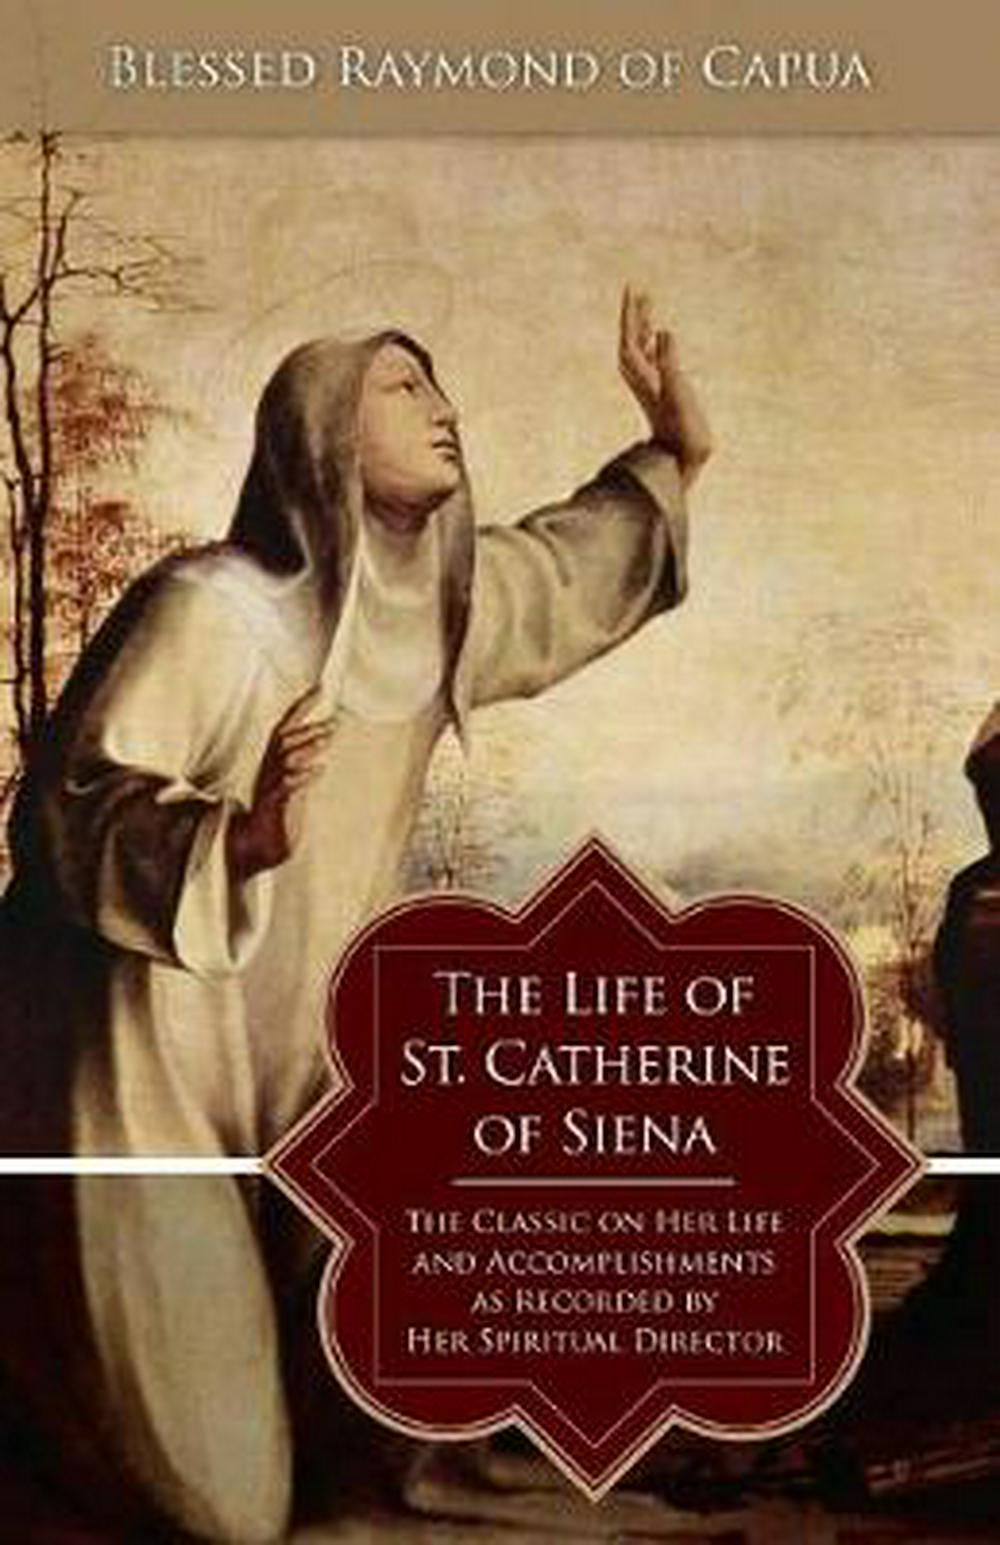 The Life of St. Catherine of Siena by Blessed Raymond of Capua, ISBN: 9780895557612